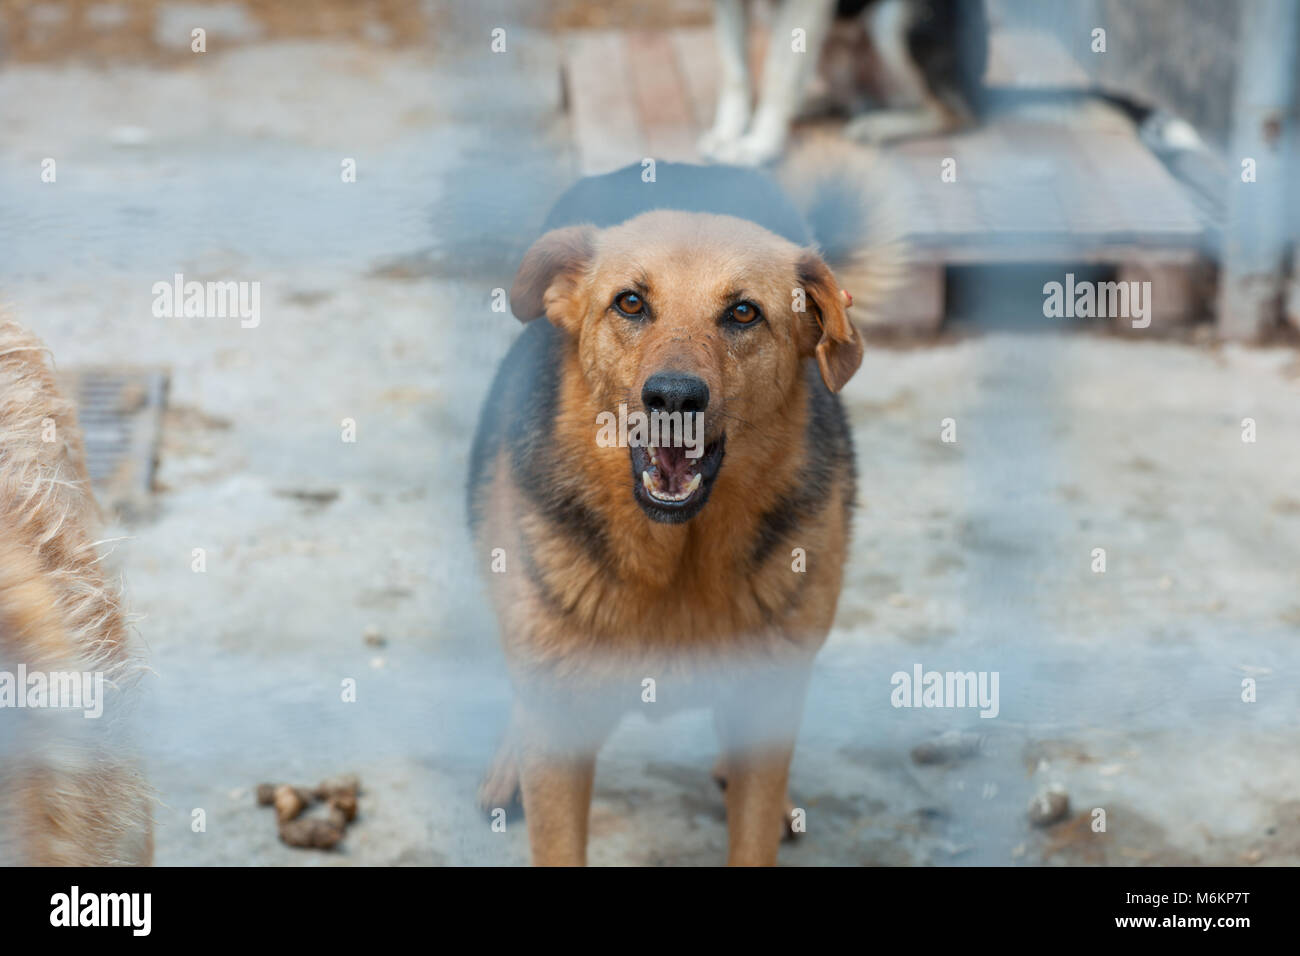 Homeless dog in a shelter cage. Dog growls - Stock Image